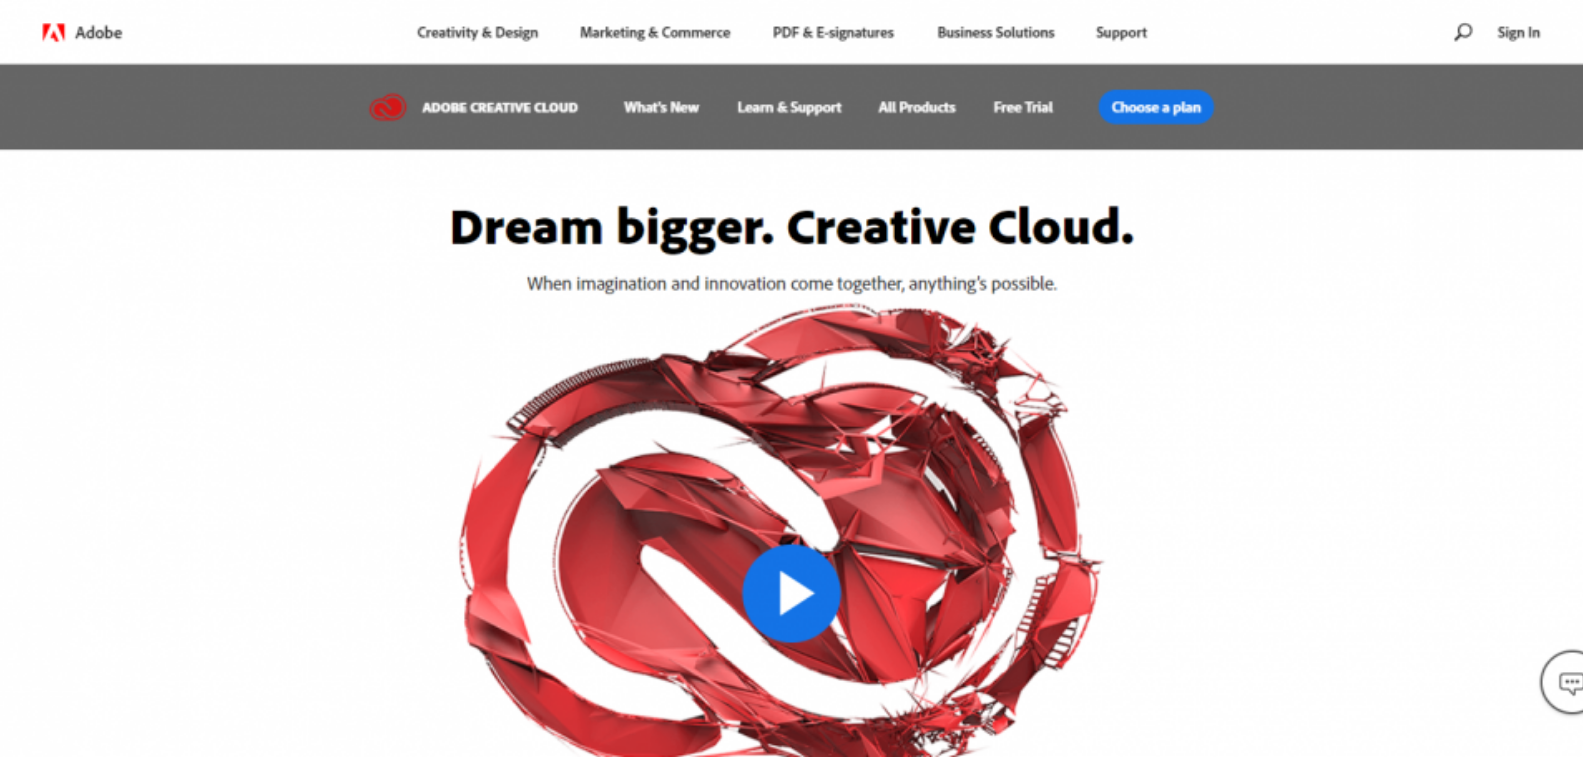 Adobe Homepage Resource